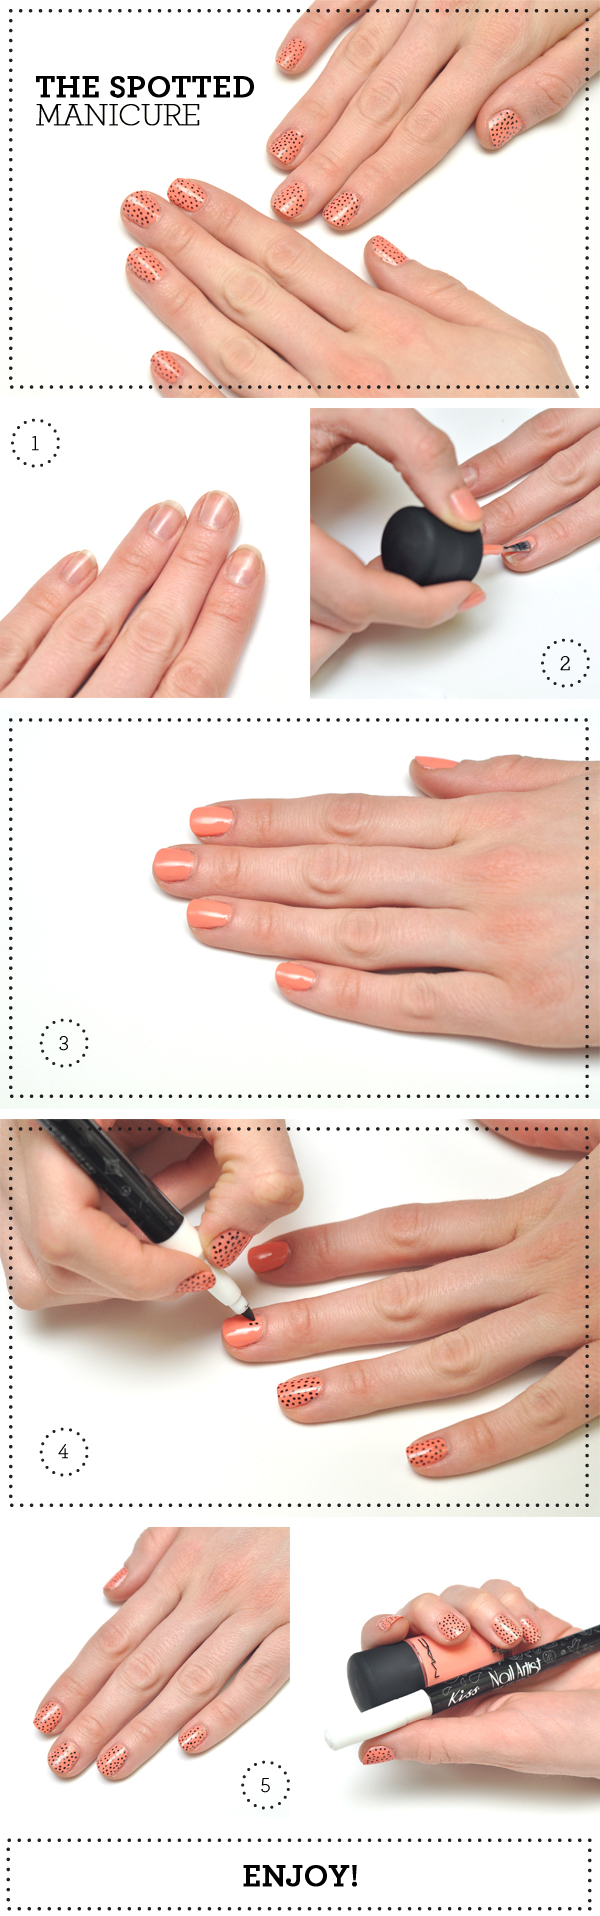 The Spotted Manicure // http://wp.me/p1q59G-1bj